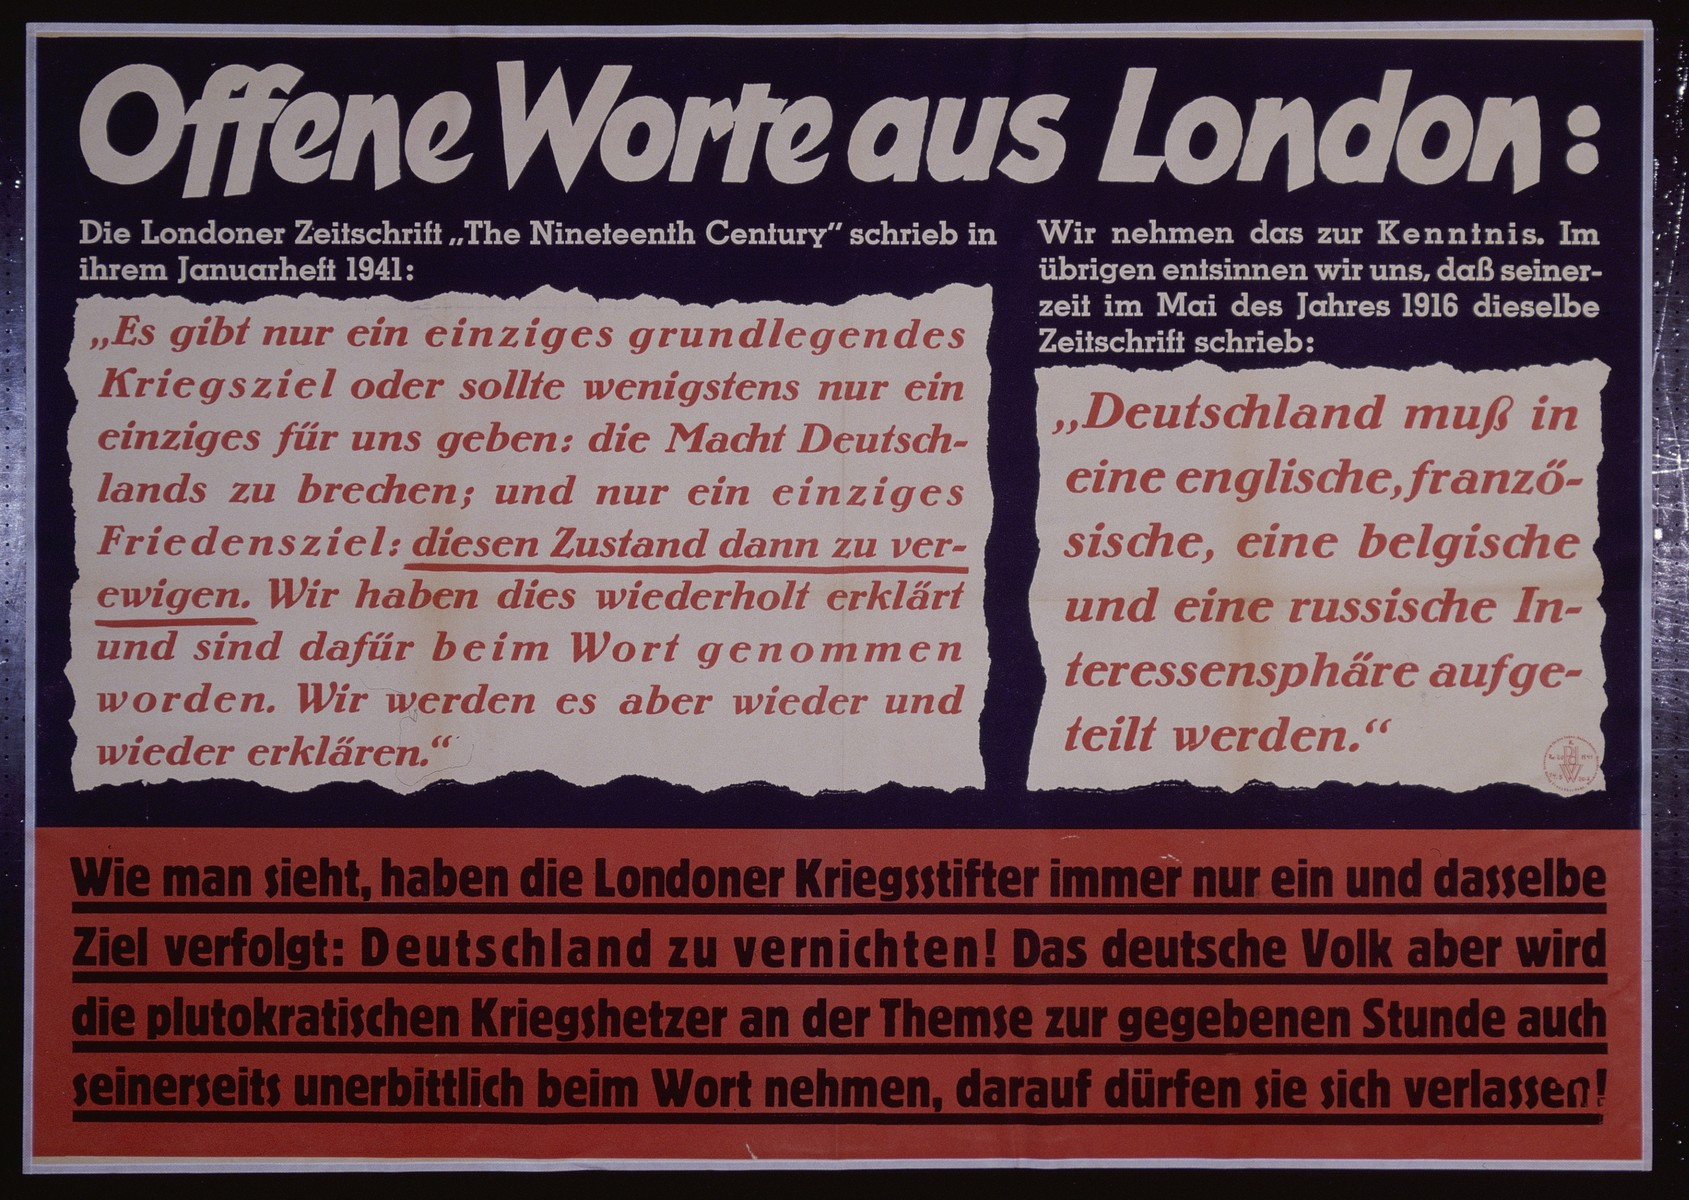 """Nazi propaganda poster entitled, """"Offene Worte aus London:,"""" issued by the """"Parole der Woche,"""" a wall newspaper (Wandzeitung) published by the National Socialist Party propaganda office in Munich."""